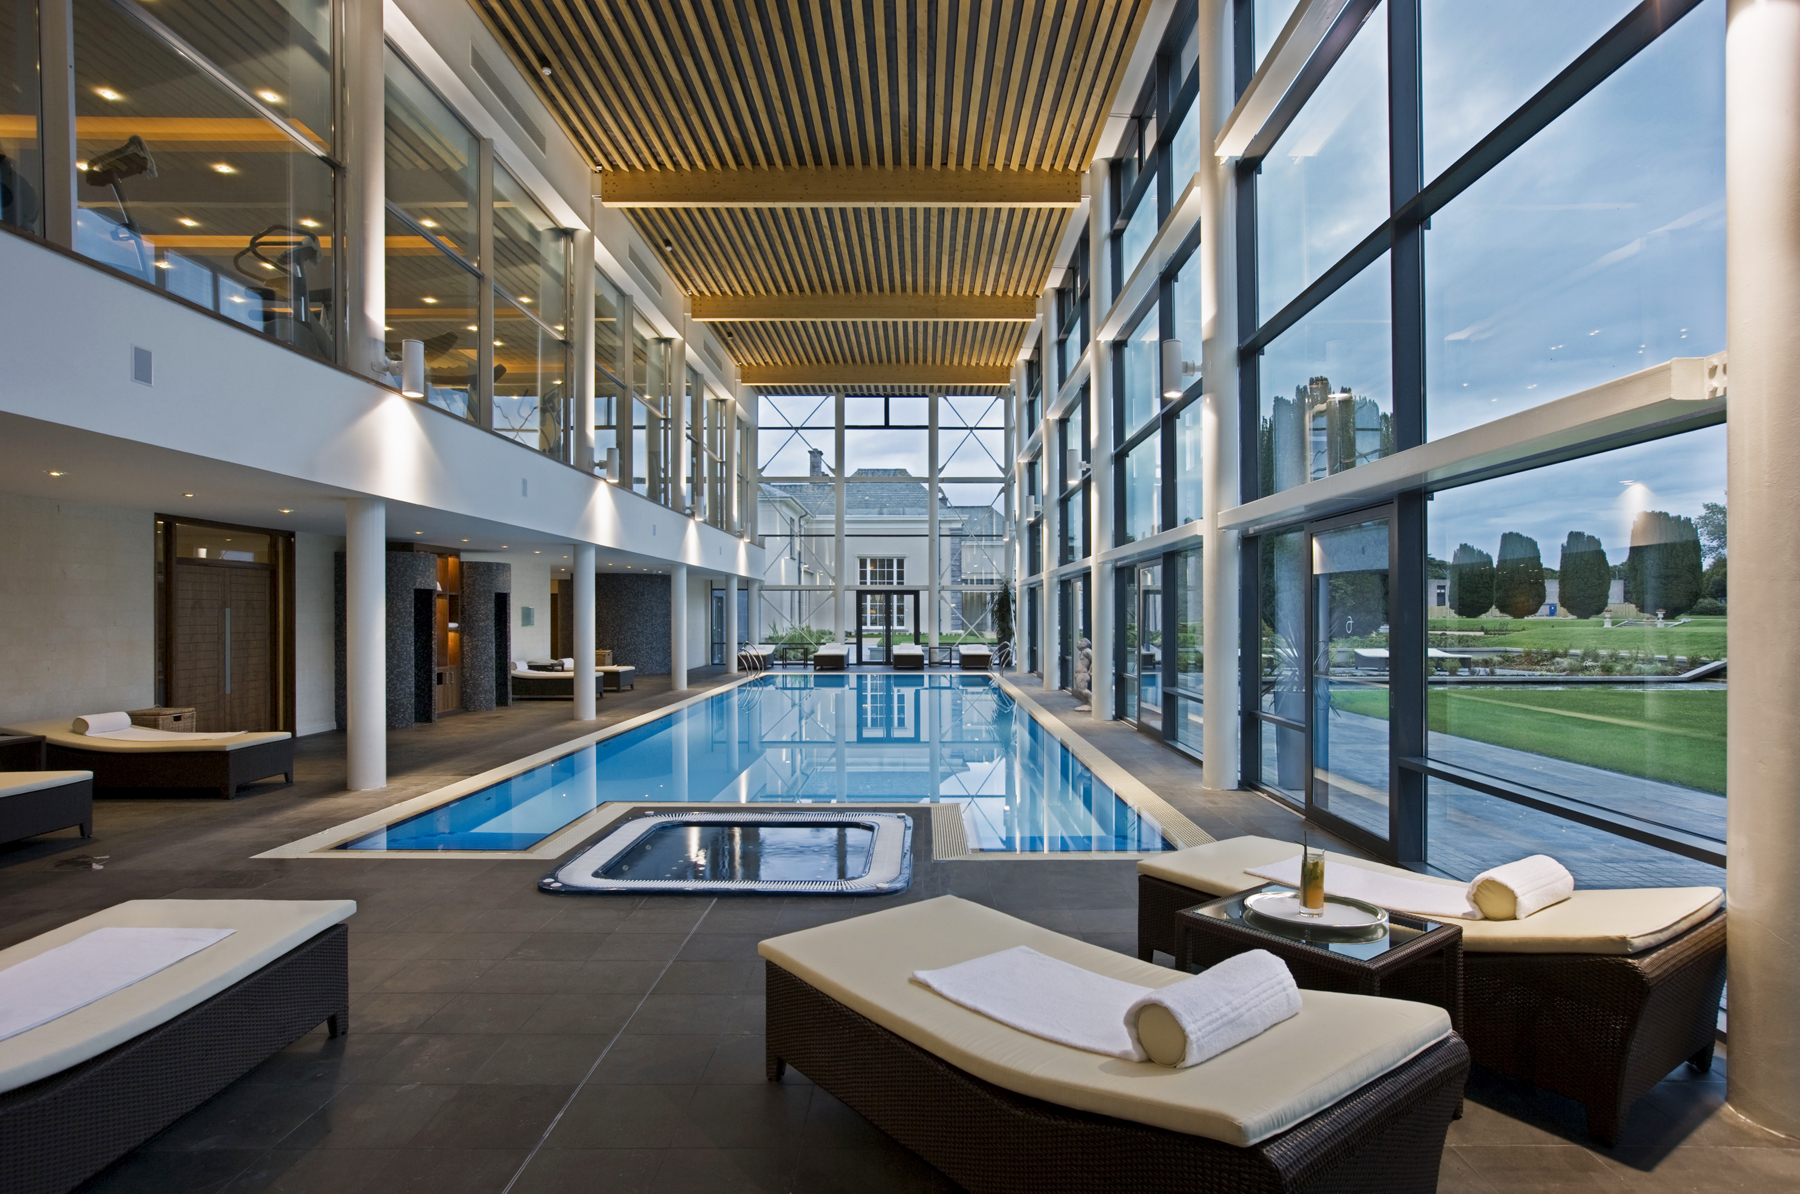 Sublime spa special at the 5-star Castlemartyr Resort